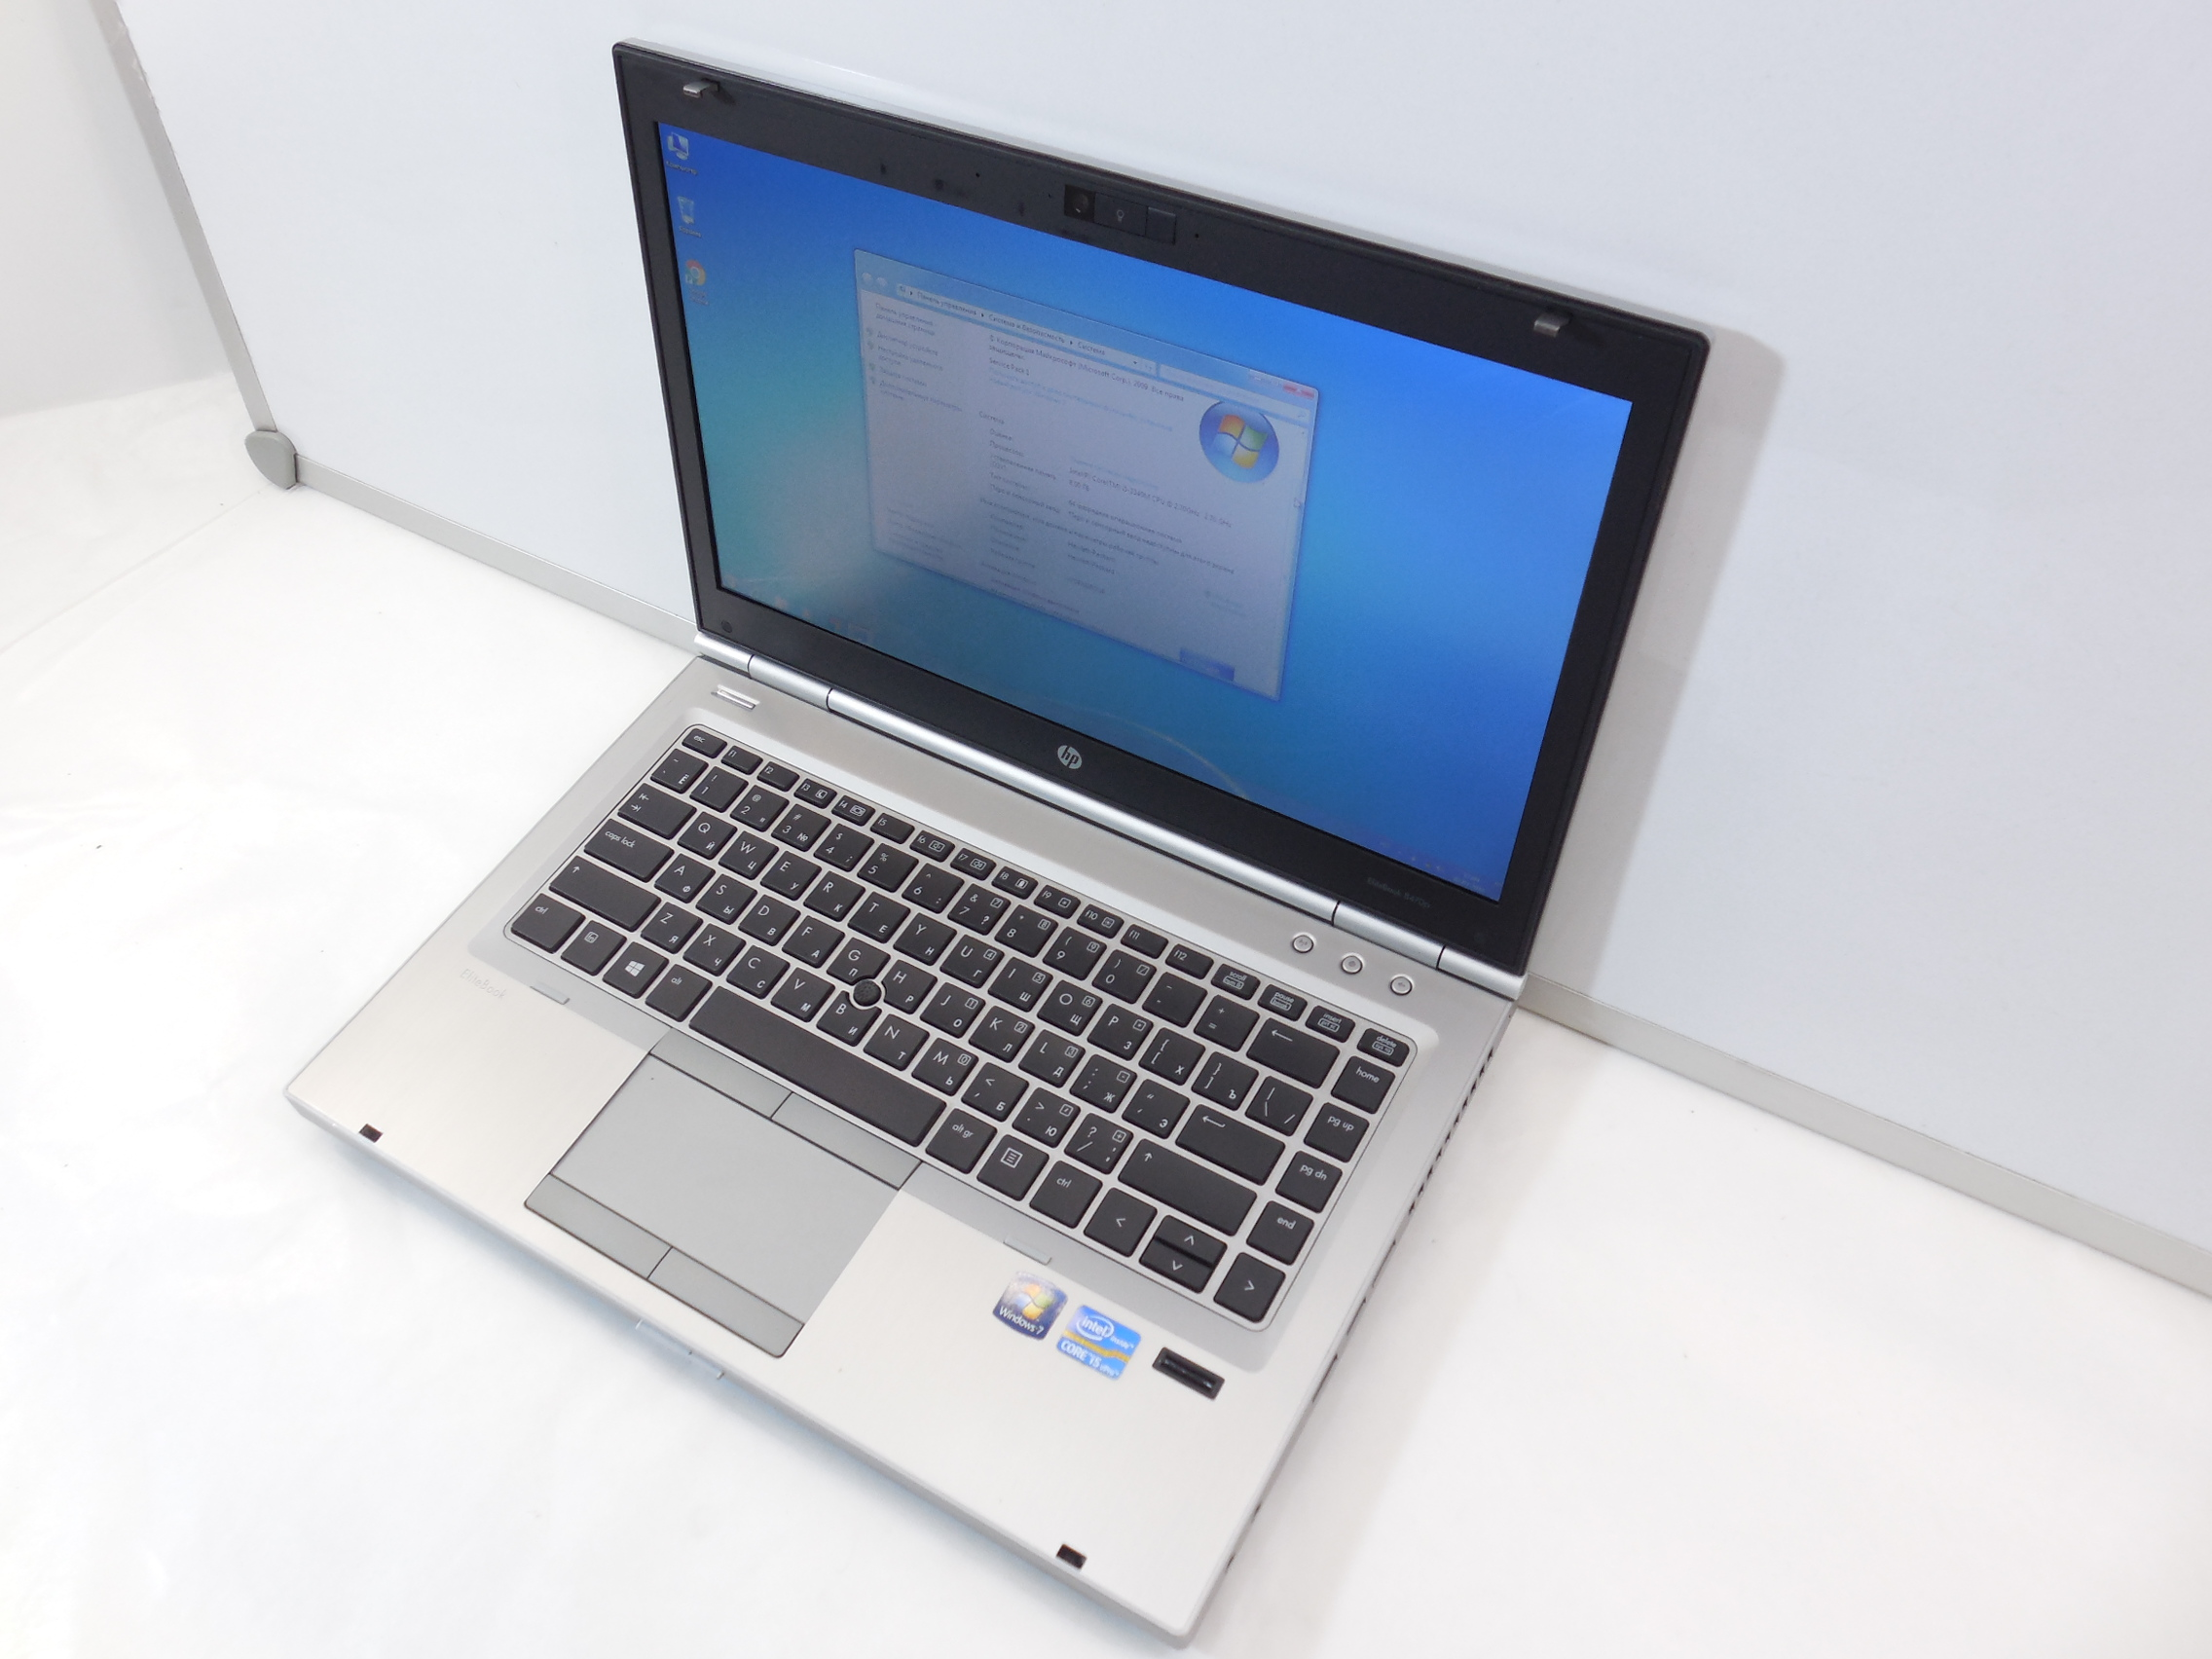 Ноутбук HP EliteBook 8470p для графики и дизайна - Pic n 275036